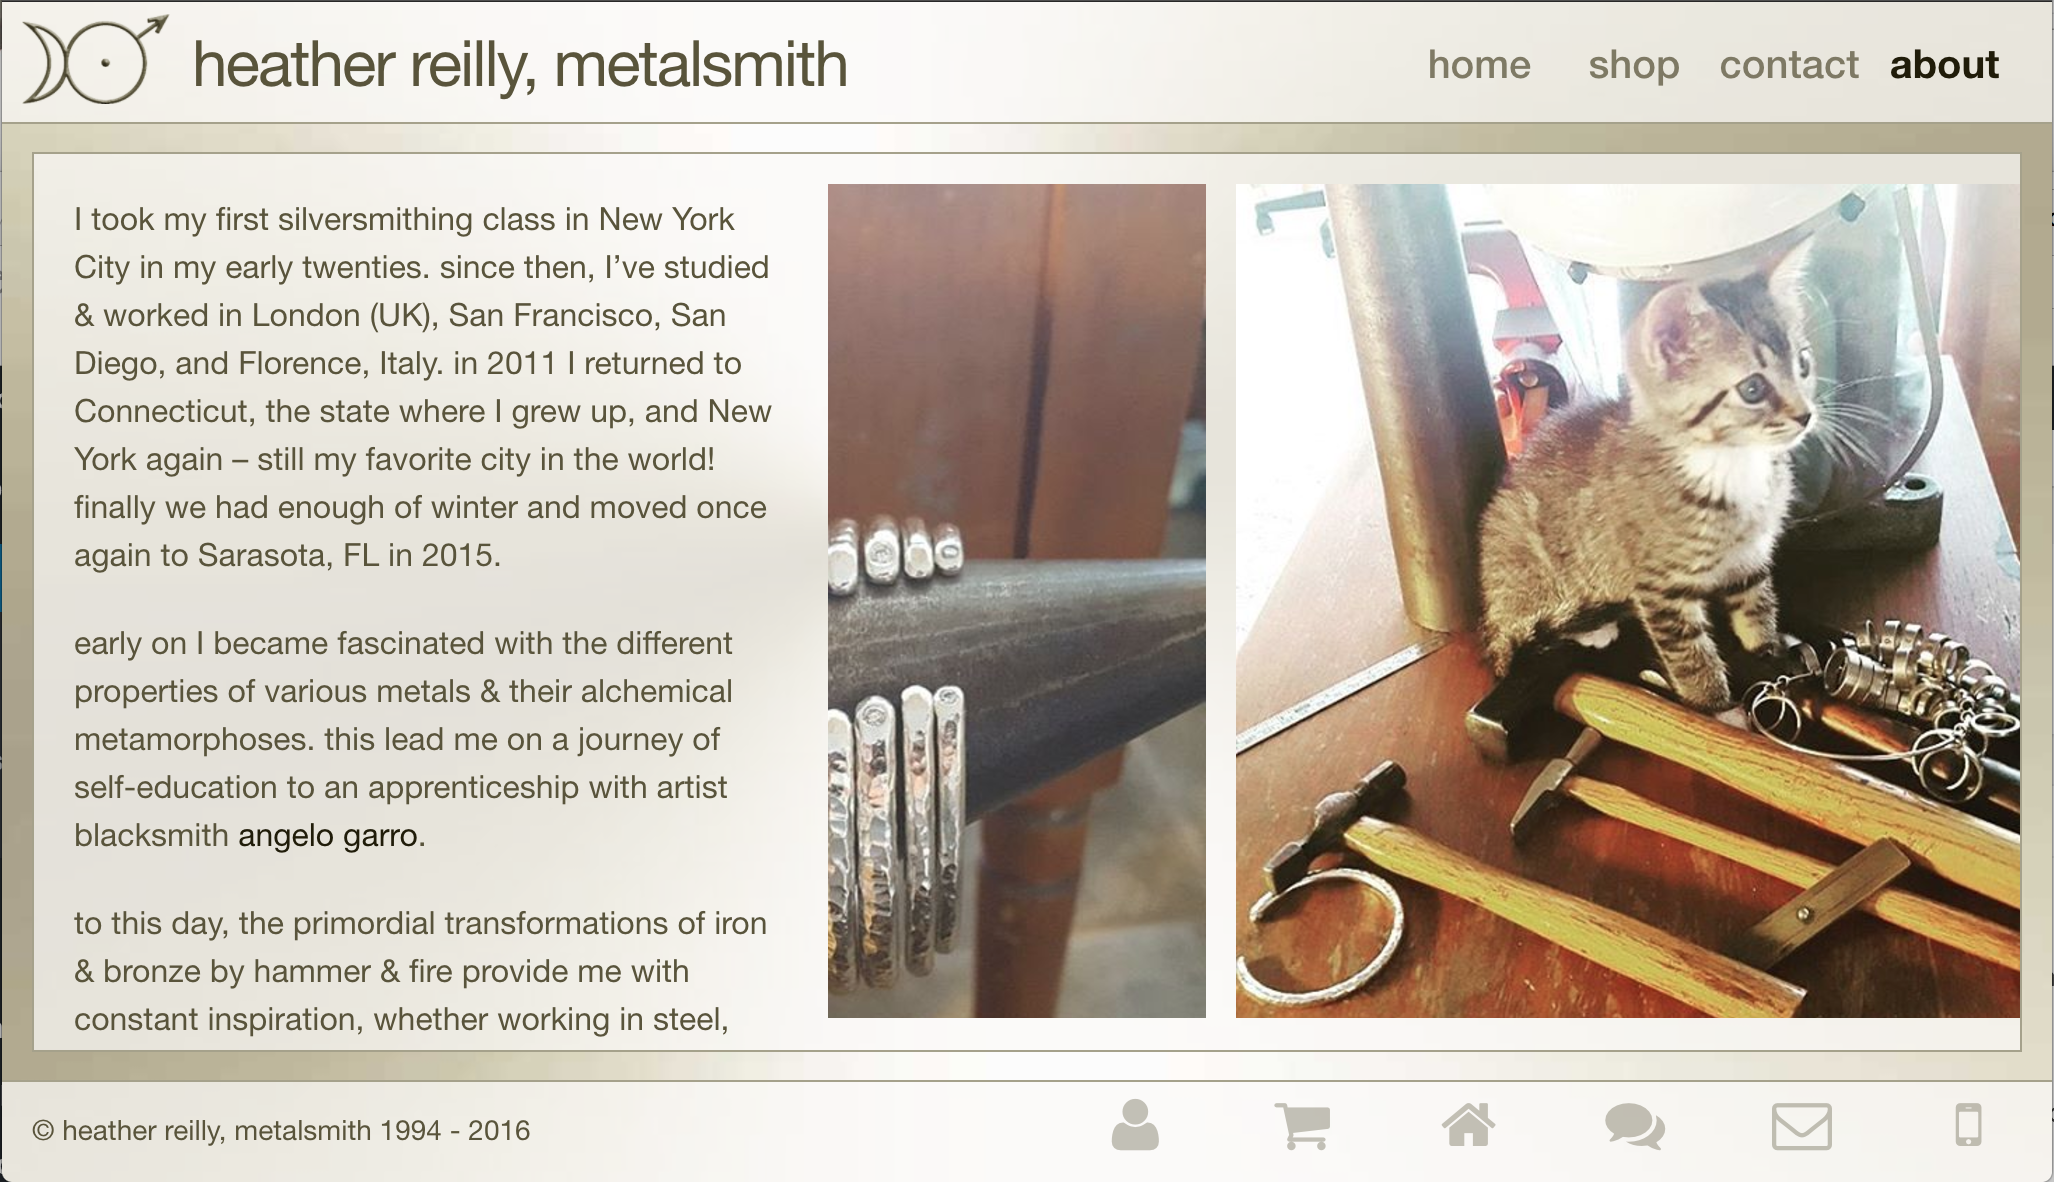 heather reilly, metalsmith